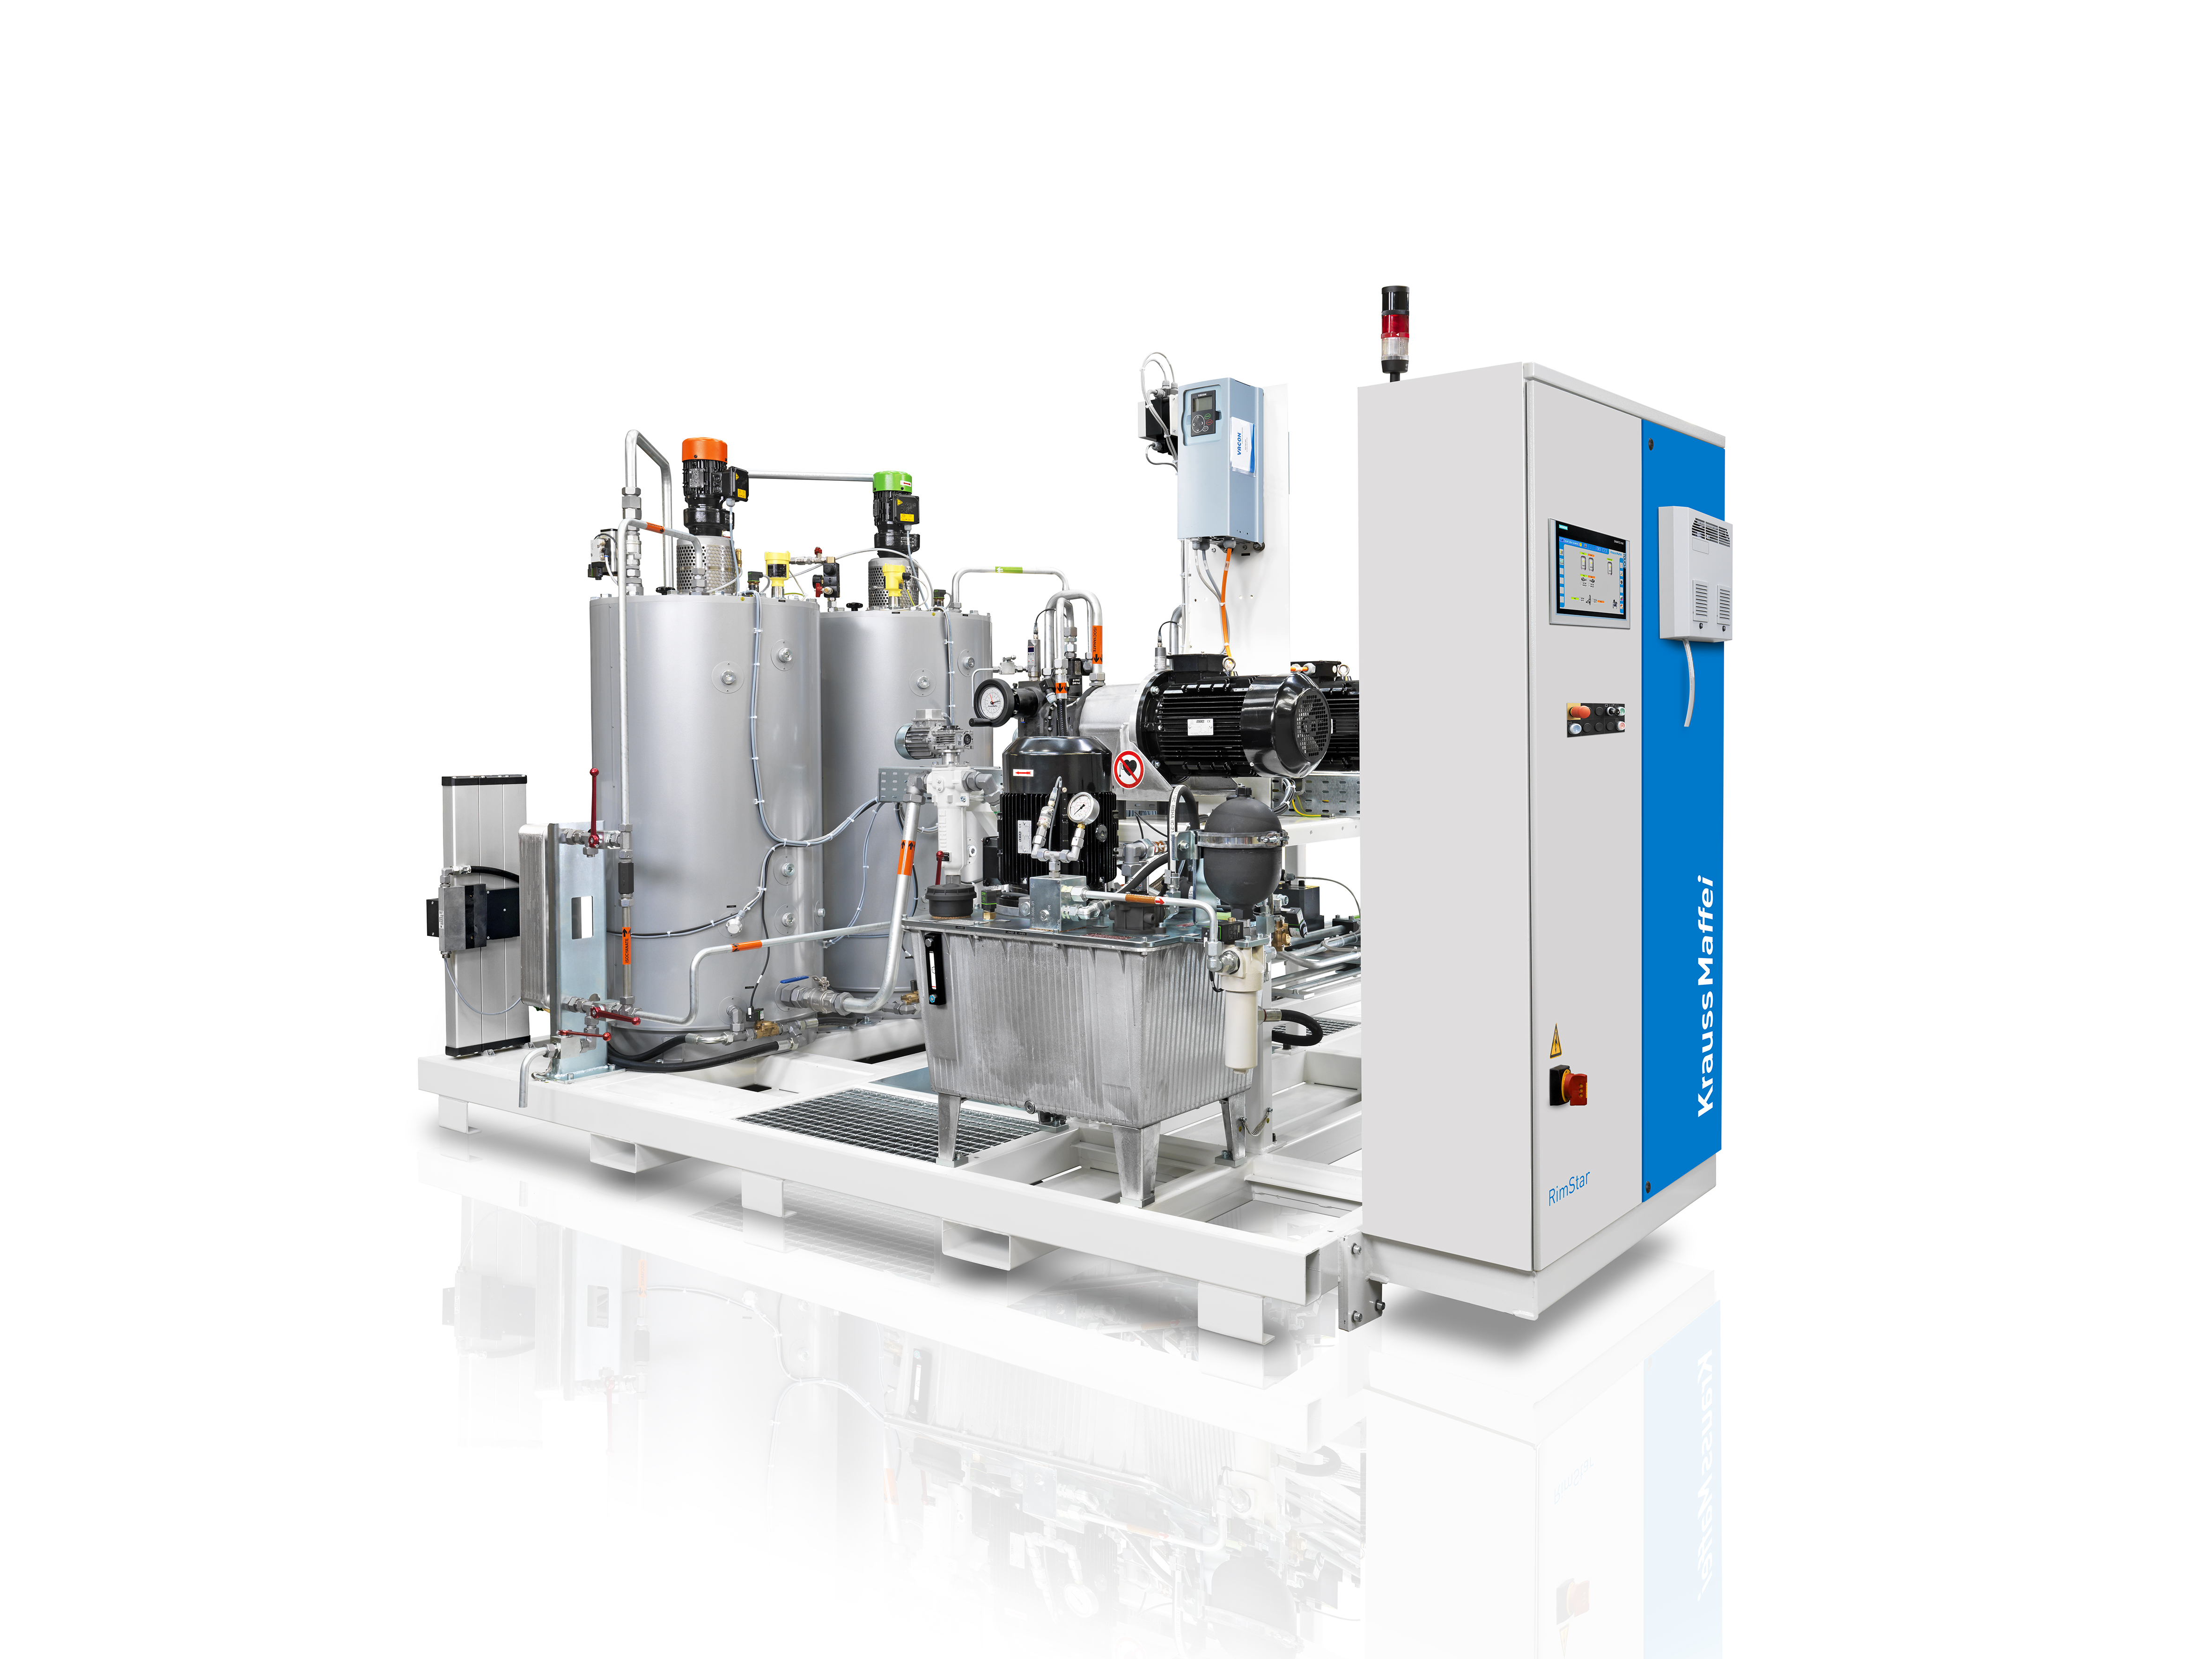 KraussMaffei offers the new standard metering machine RimStar for high demands. (Source: KraussMaffei)